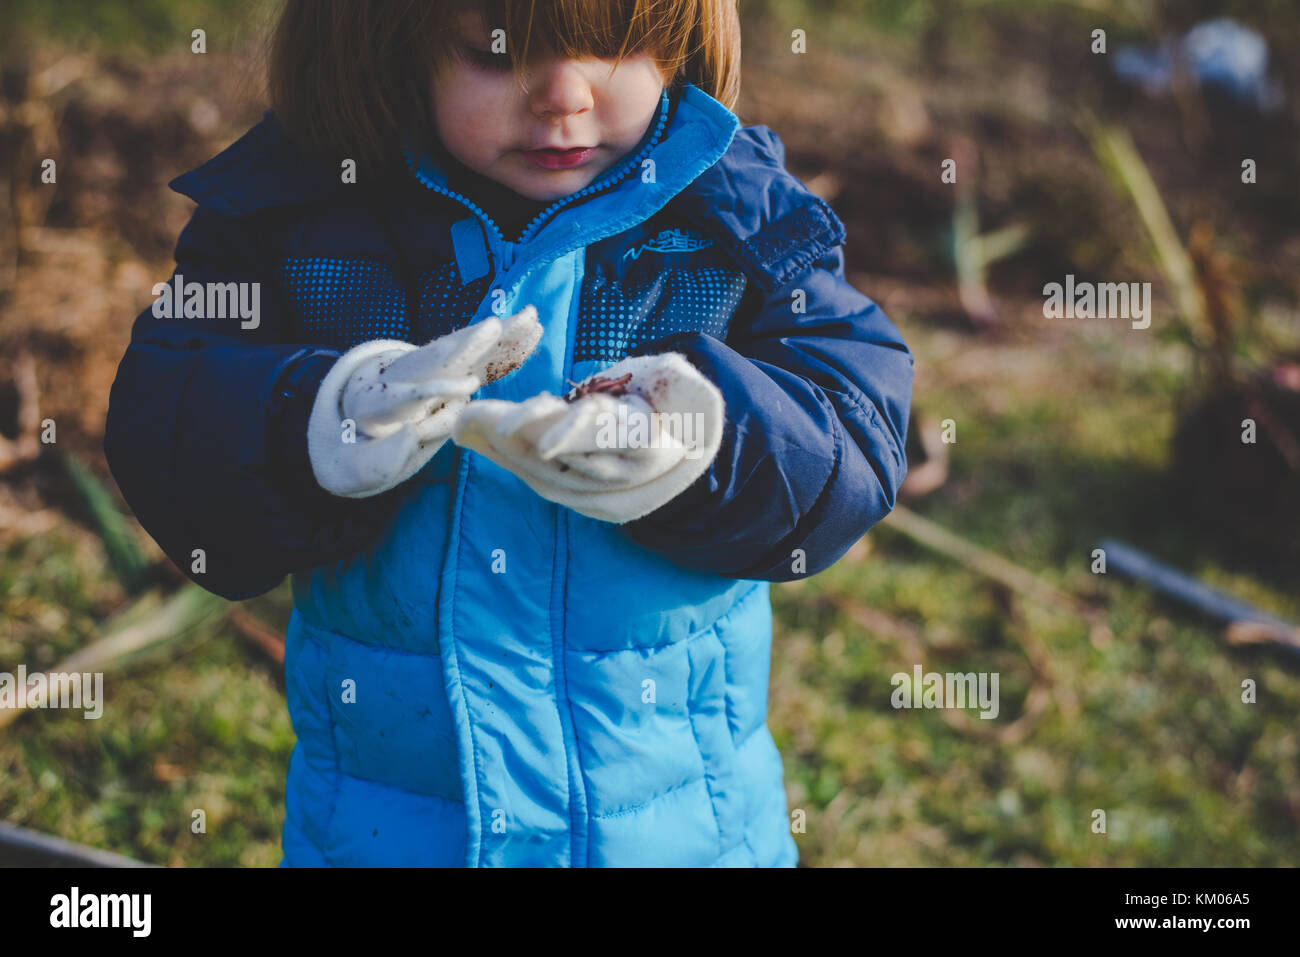 A little girl looking at dirt in her glove covered hands Stock Photo